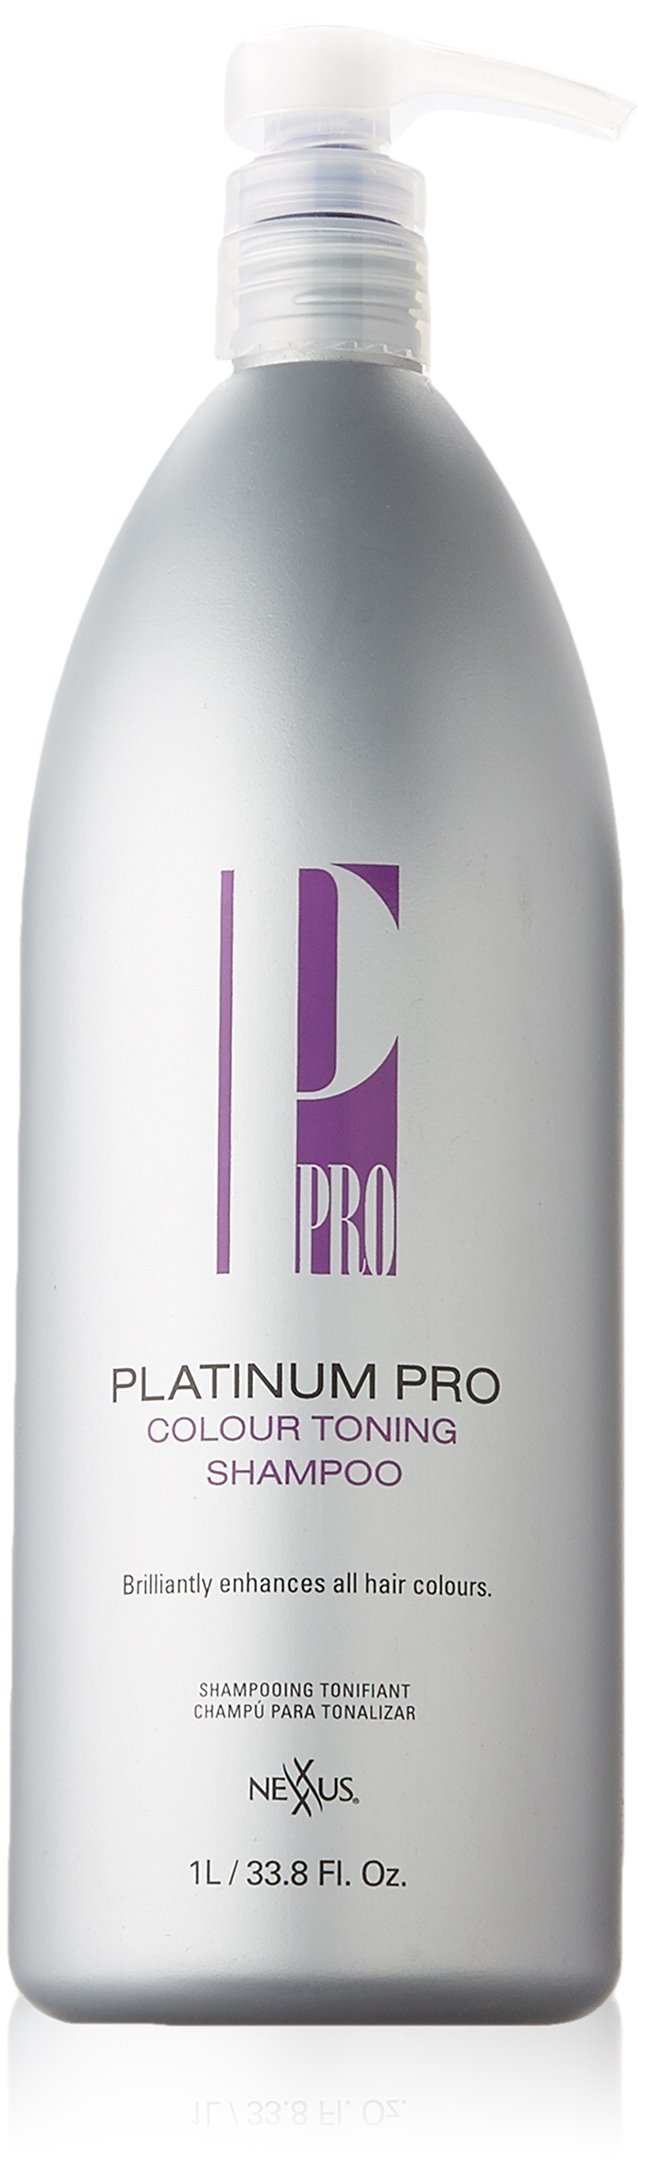 Nexxus Platinum Pro Colour Toning Shampoo, 33.8 Ounce